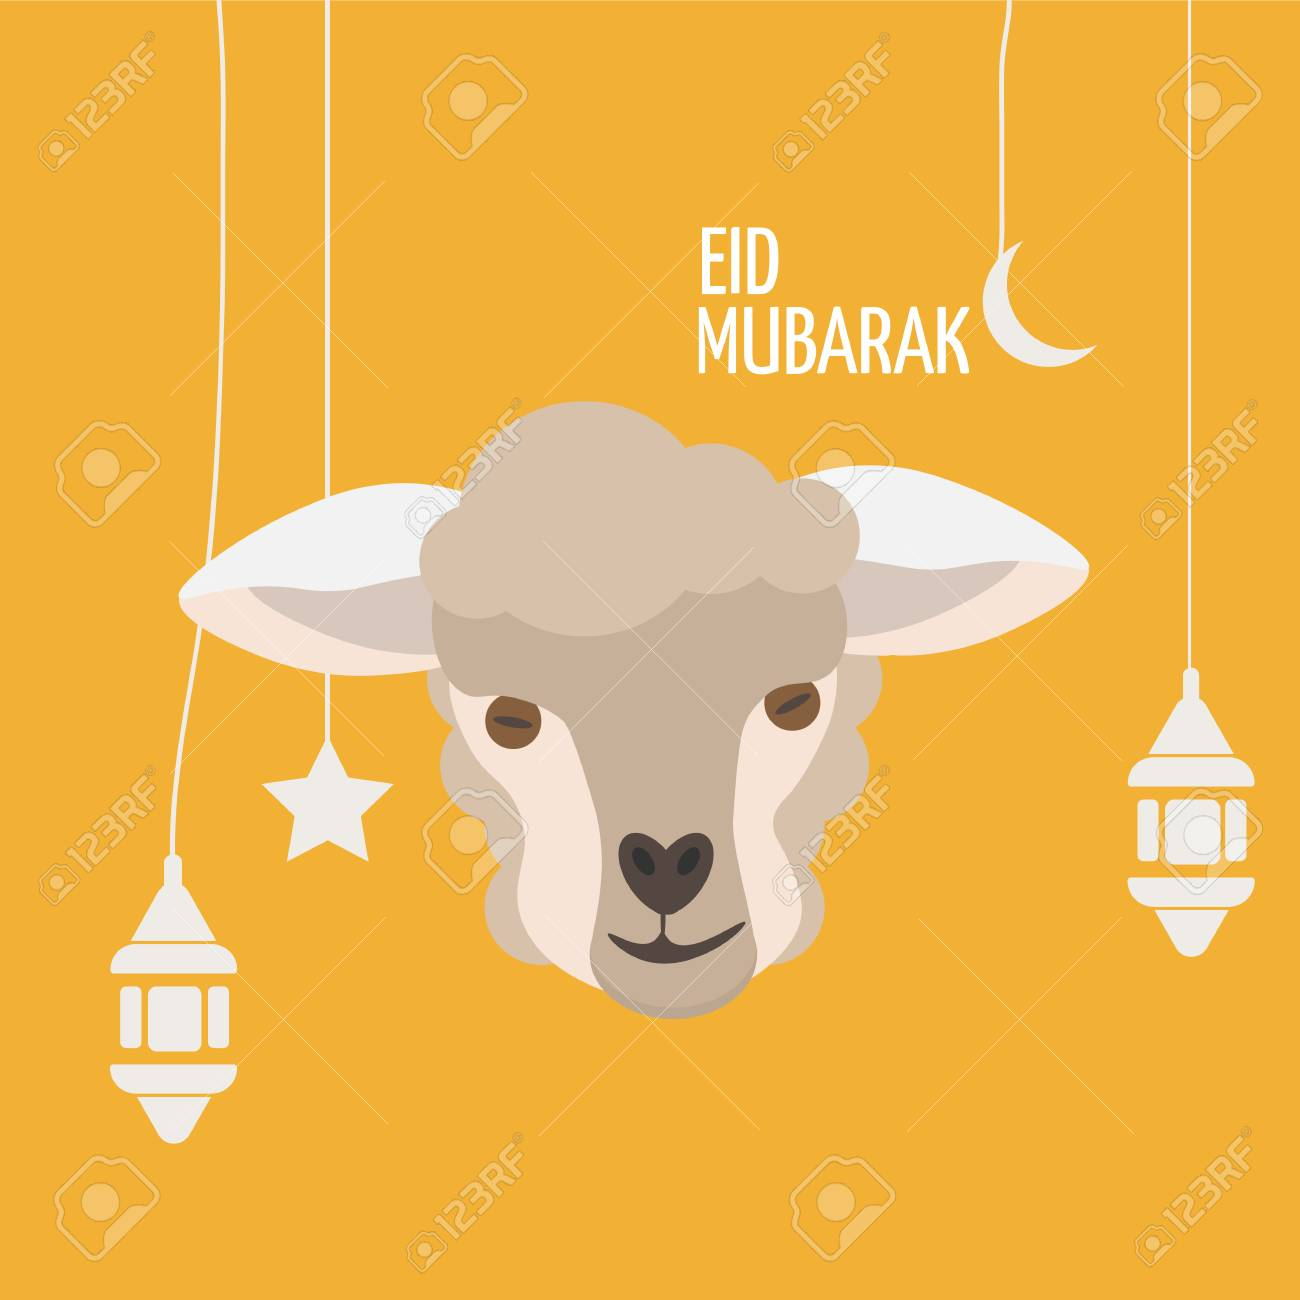 Eid Mubarak Greeting Card With Sheep Face Or Lamb Head, Ramadan ...